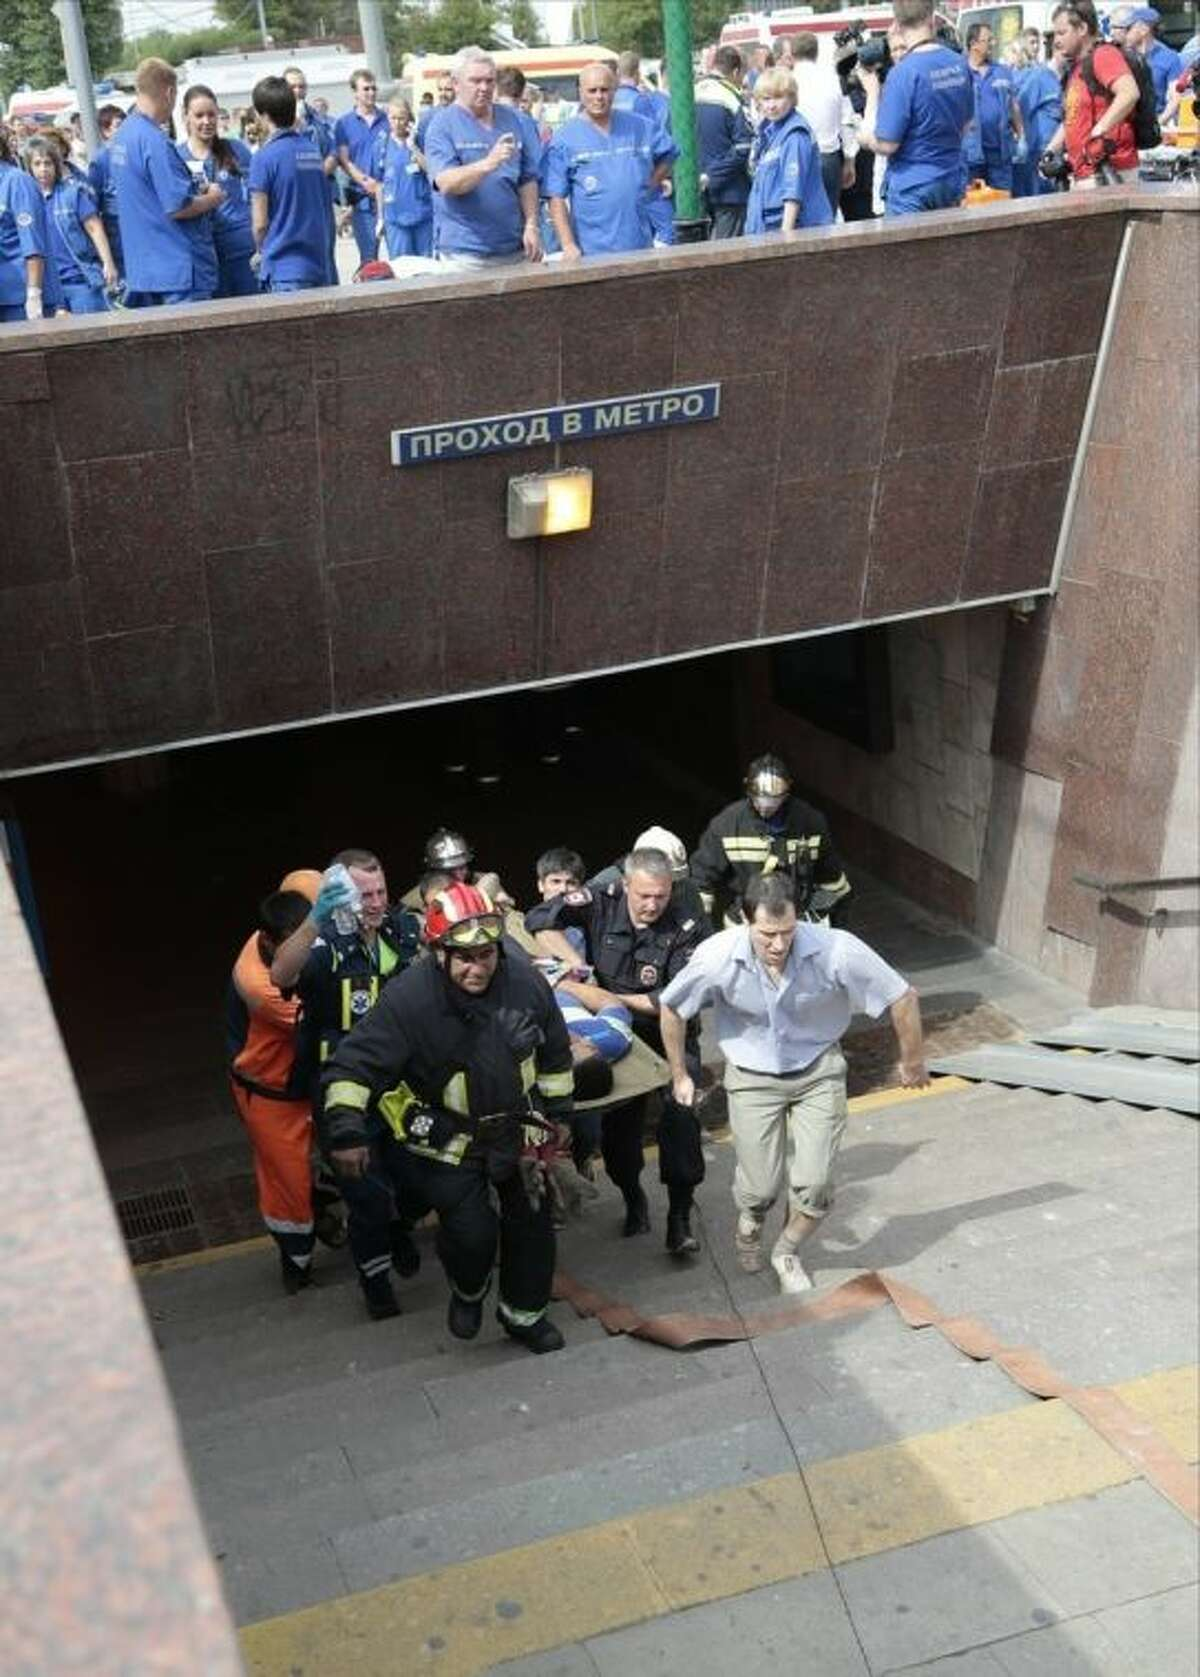 Paramedics, a police officer and a voluenteer carry an injured man out from a subway station after a rush-hour subway train derailment in Moscow, Russia, on Tuesday, July 15, 2014. A rush-hour subway train derailed in Moscow Tuesday, killing about a dozen people and injuring at least 106, emergency officials said. Several cars left the track in the tunnel after a power surge triggered an alarm, which caused the train to stop abruptly. (AP Photo/Ivan Sekretarev)